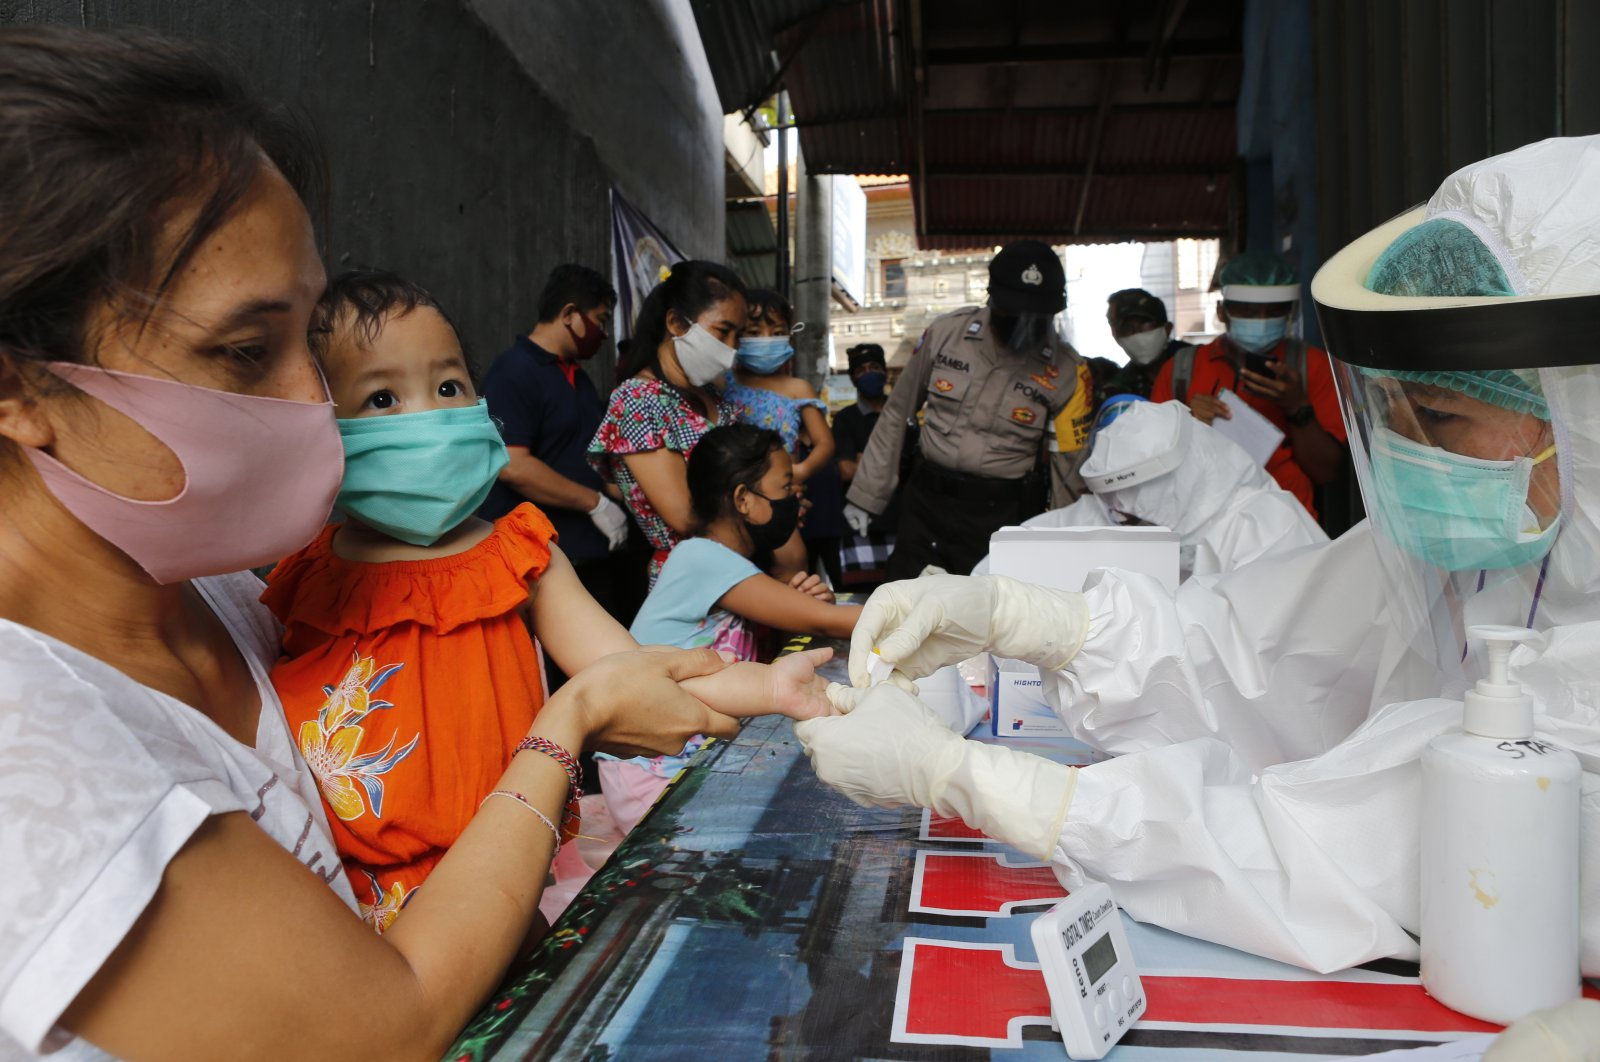 A mother holds her daughter to receive a coronavirus antibody test from health workers at a village in Bali, Indonesia, May 27, 2020. (AP Photo)